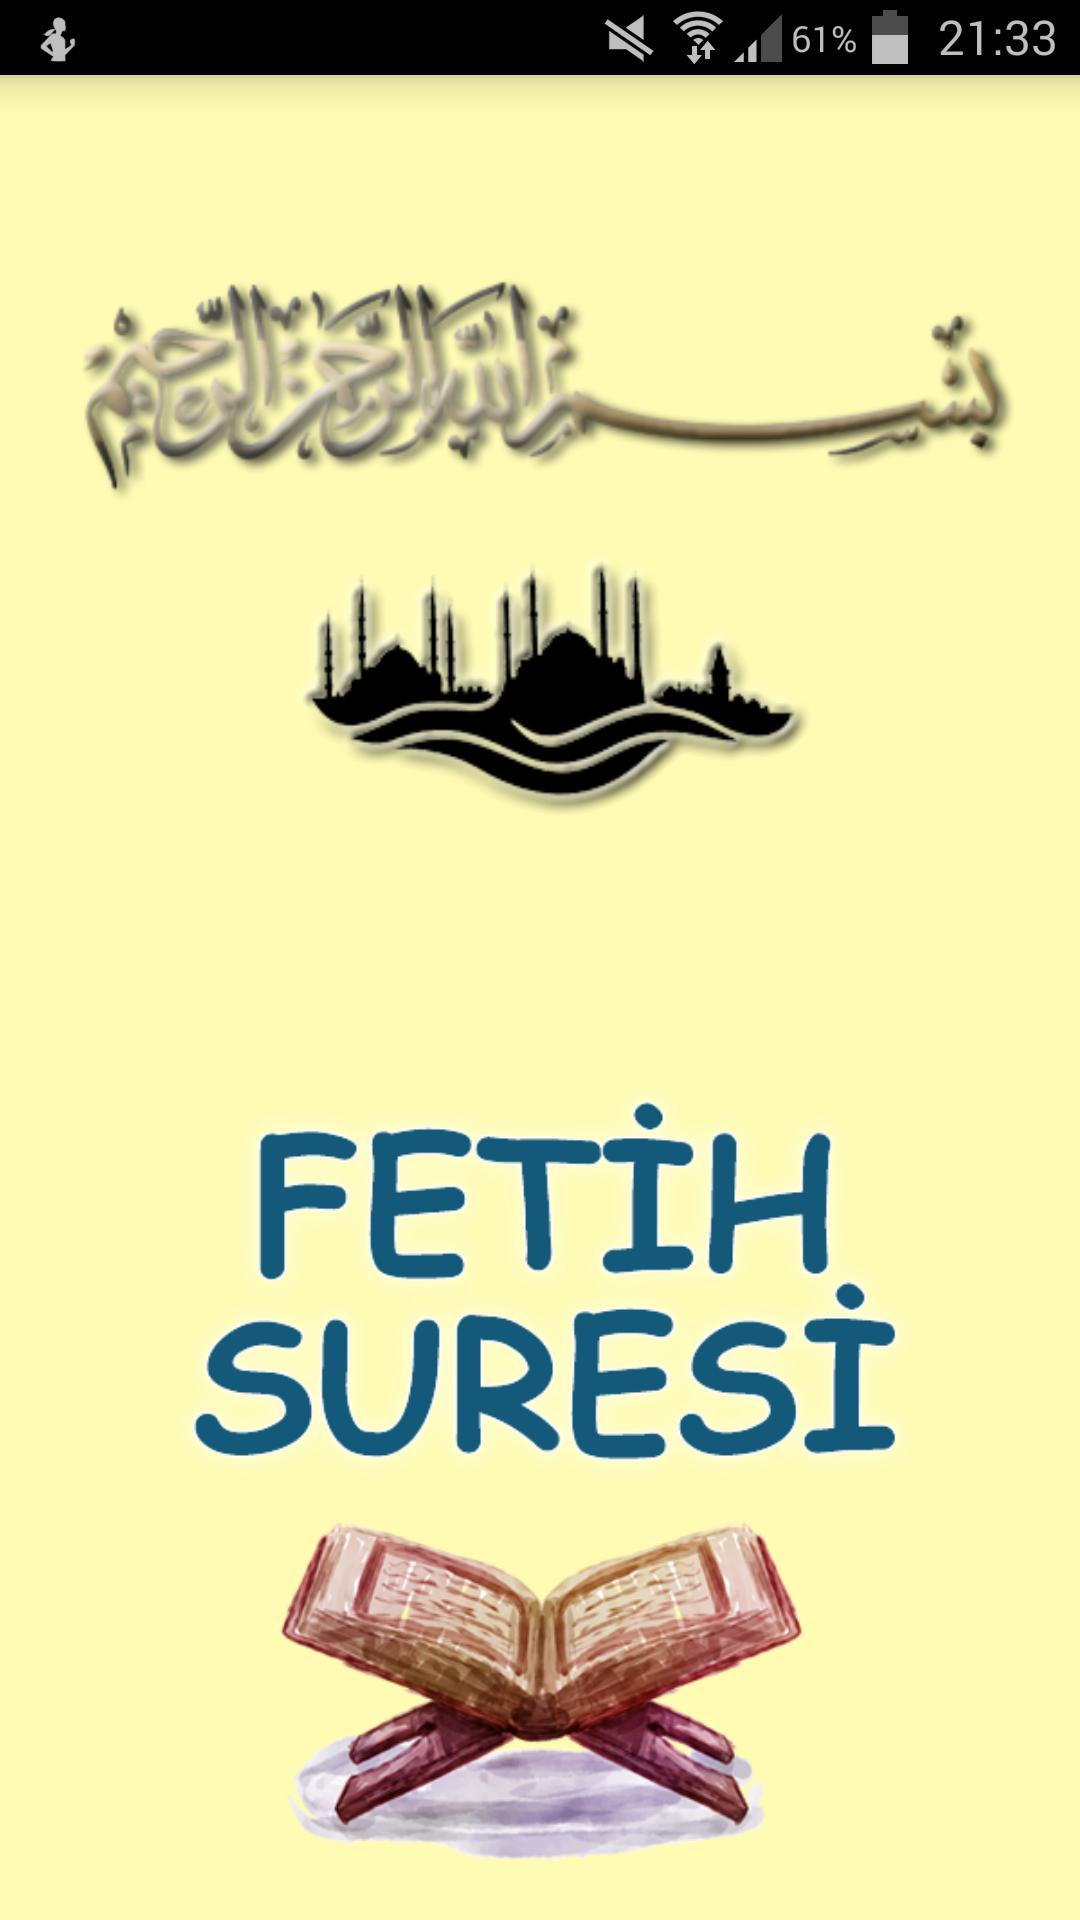 Fetih Suresi for Android - APK Download